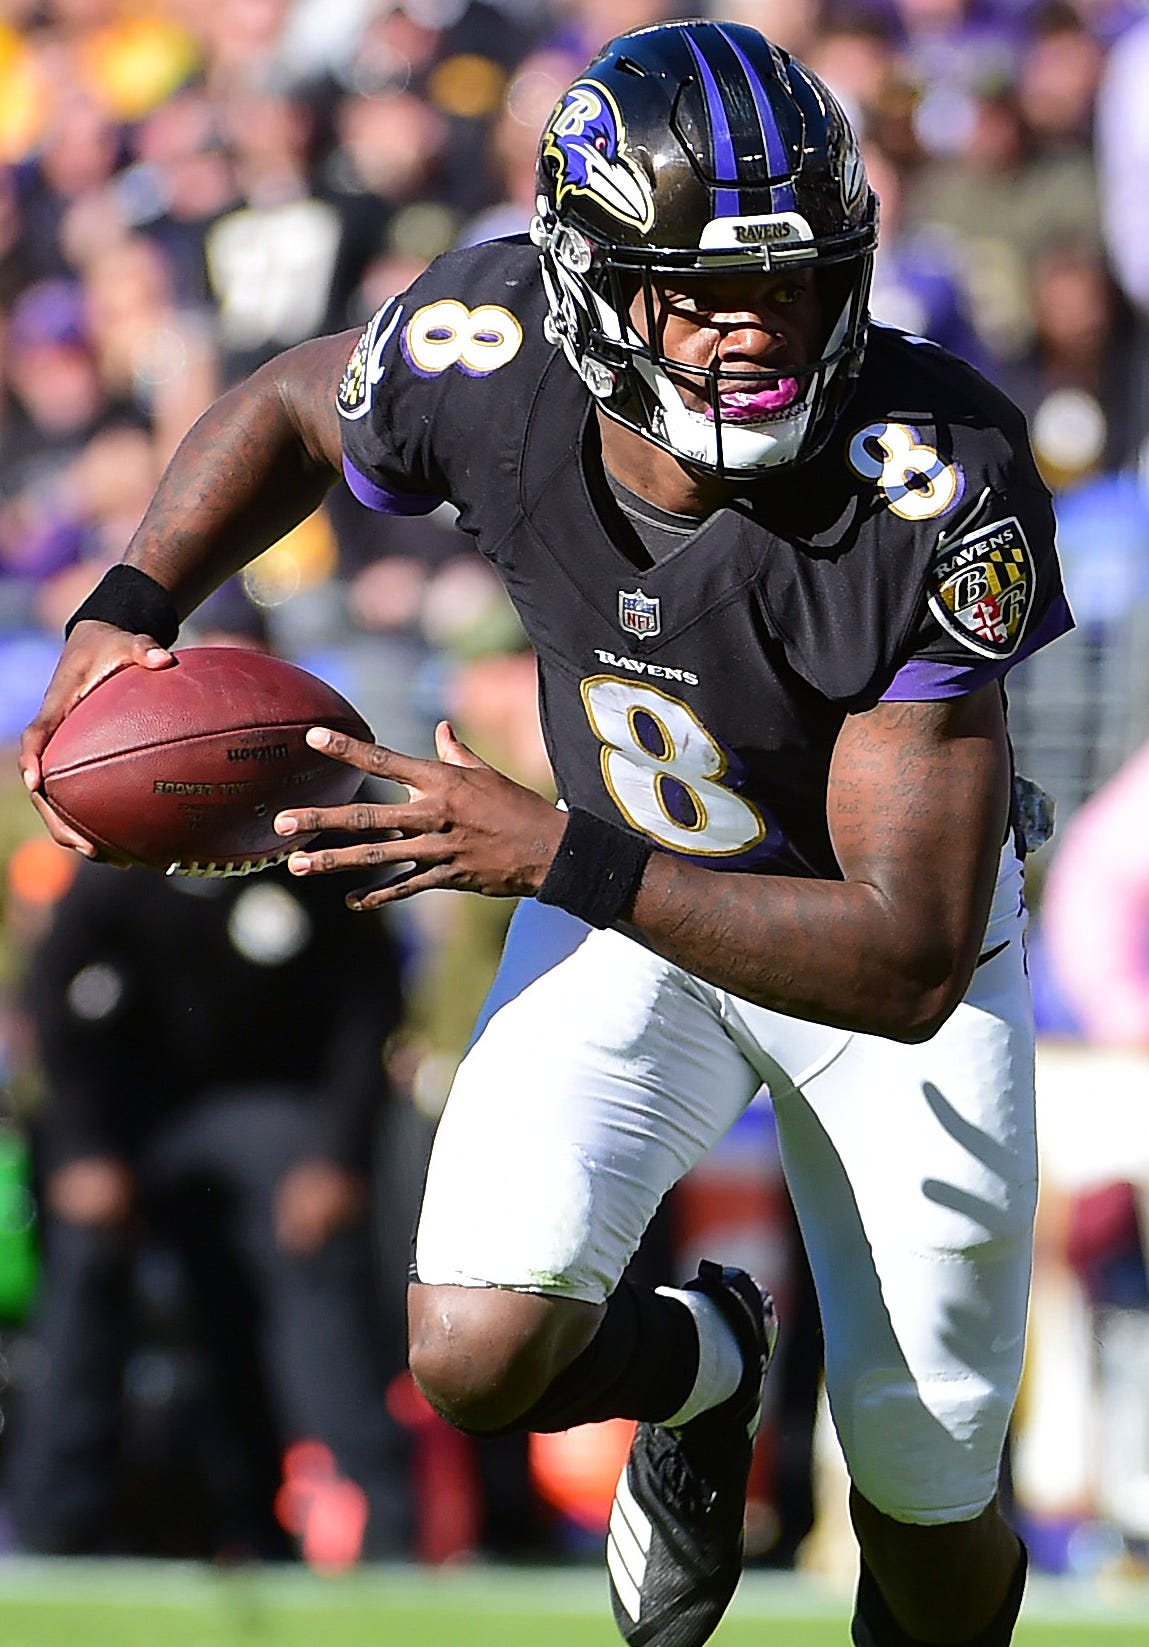 20. Ravens (16): Welp. If Lamar Jackson must be pressed into service, at least he'd get to make starting debut against league's worst (ever?) defense — Cincinnati.